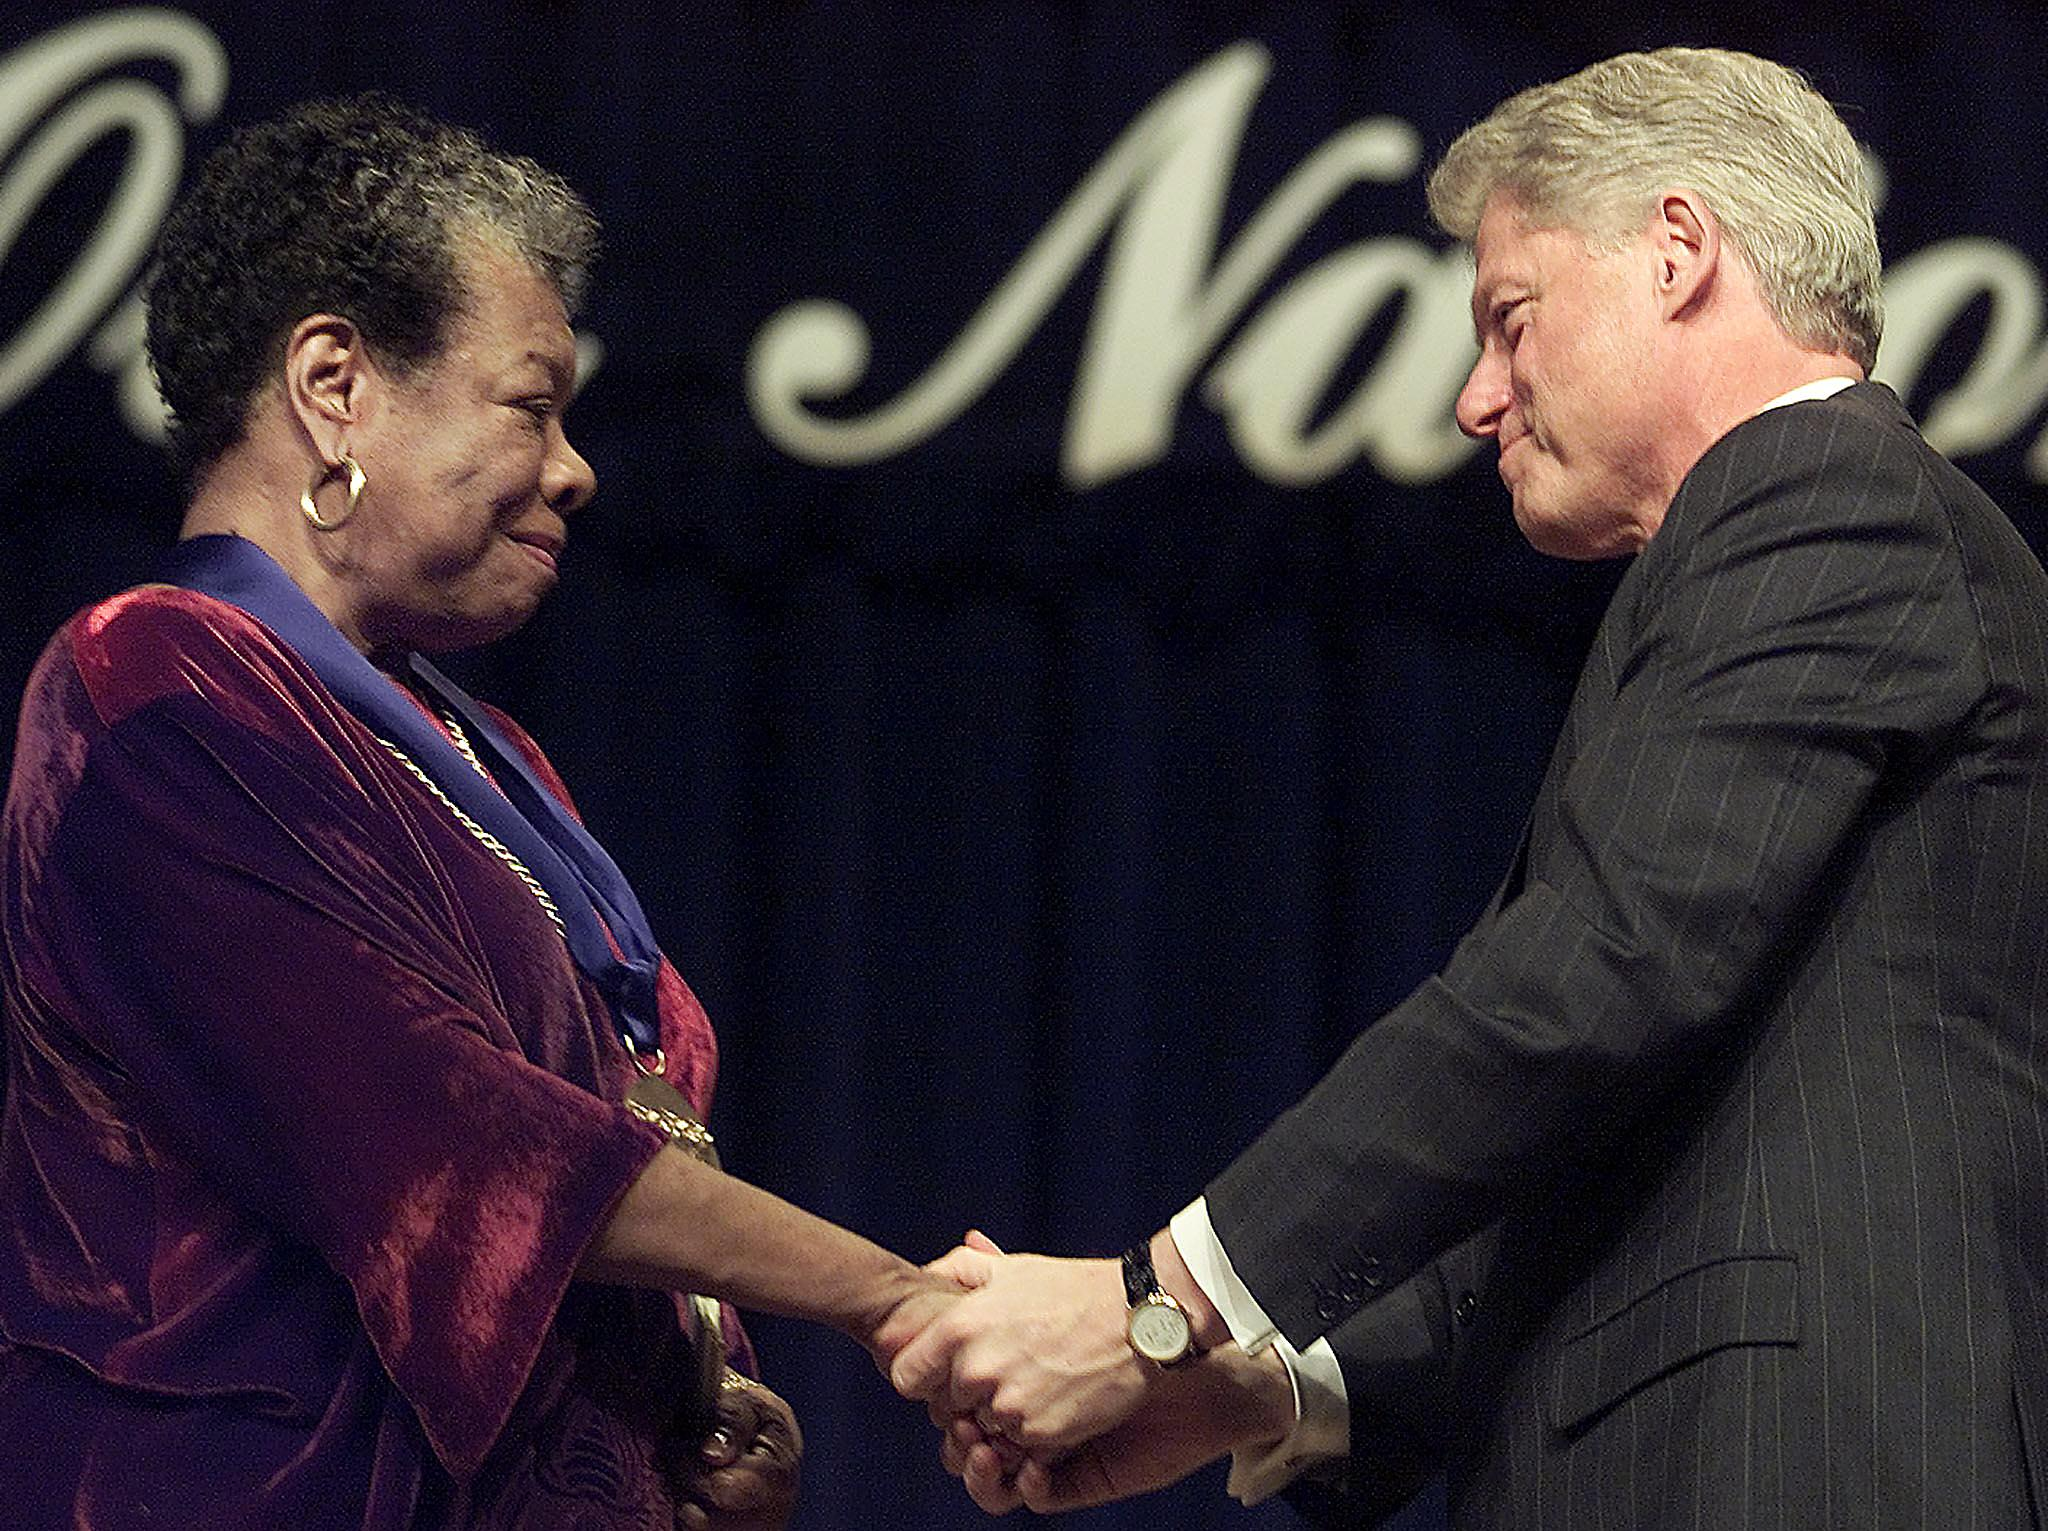 On December 20, 2000, President Bill Clinton, gave Angelou the National Medal of Arts, highest award given to artists and arts patrons by the U.S. government, at Constitution Hall in Washington, DC.